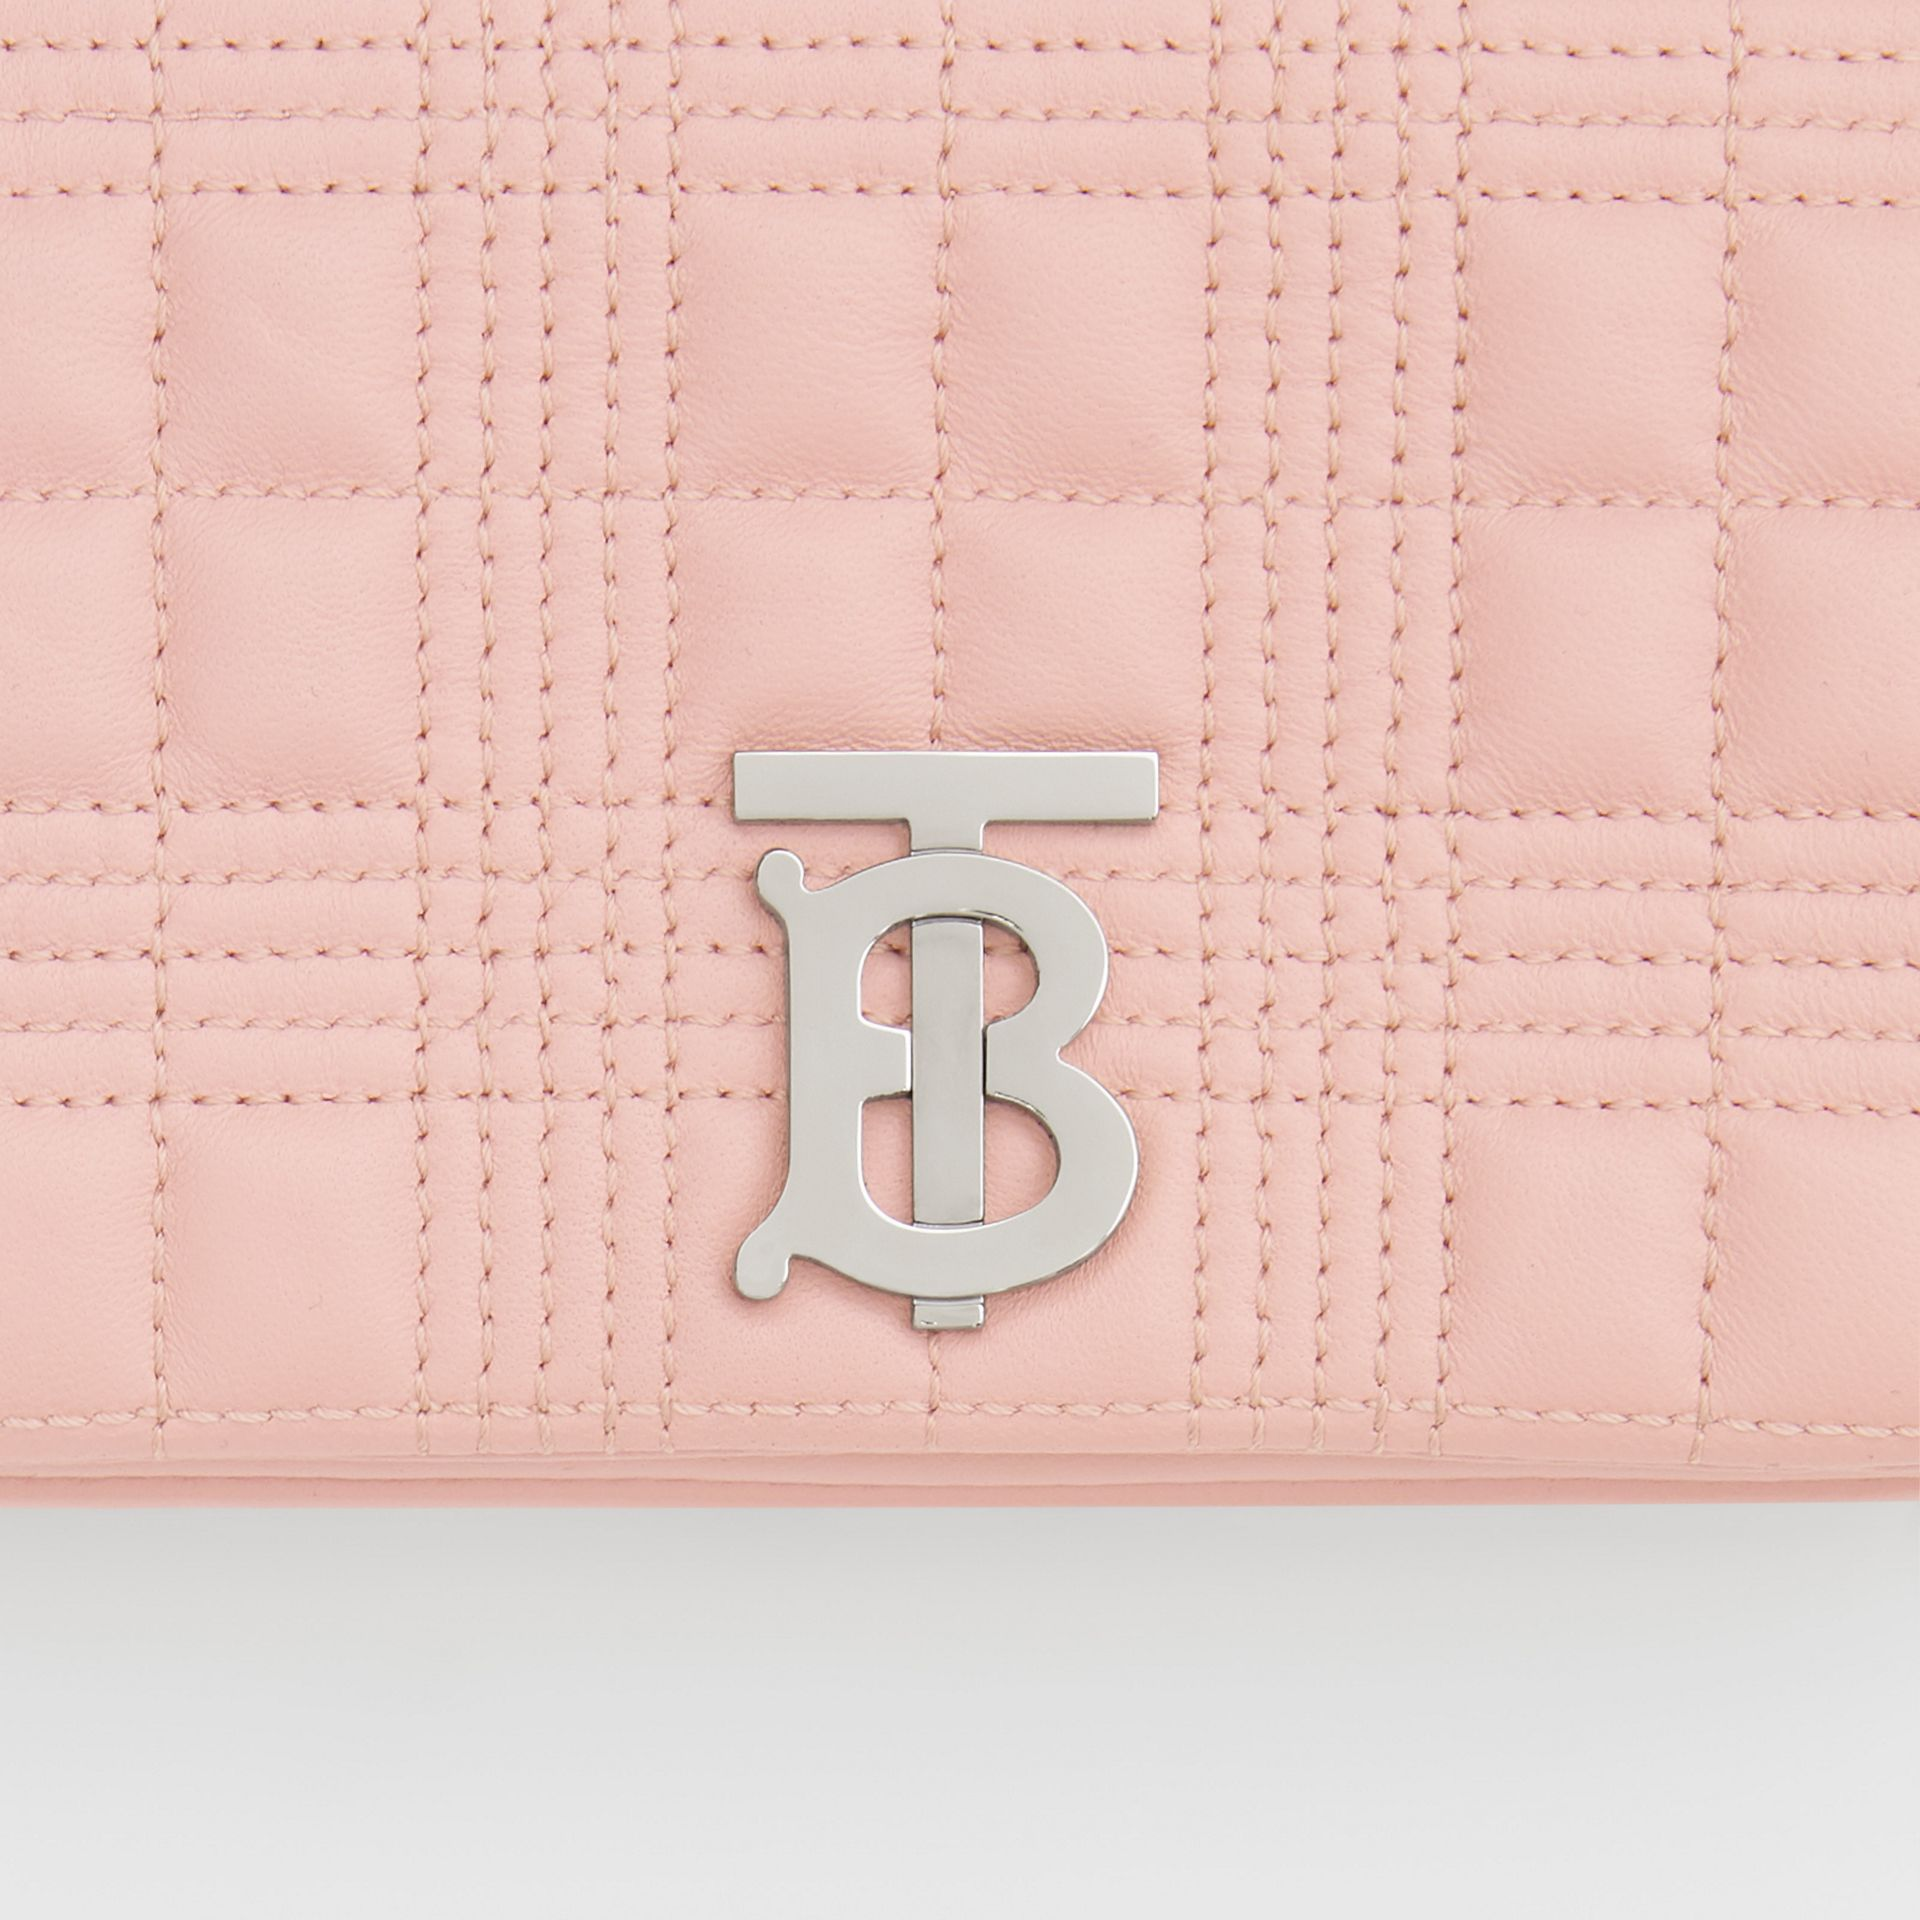 Mini Quilted Lambskin Lola Bag in Blush Pink - Women | Burberry Canada - gallery image 1